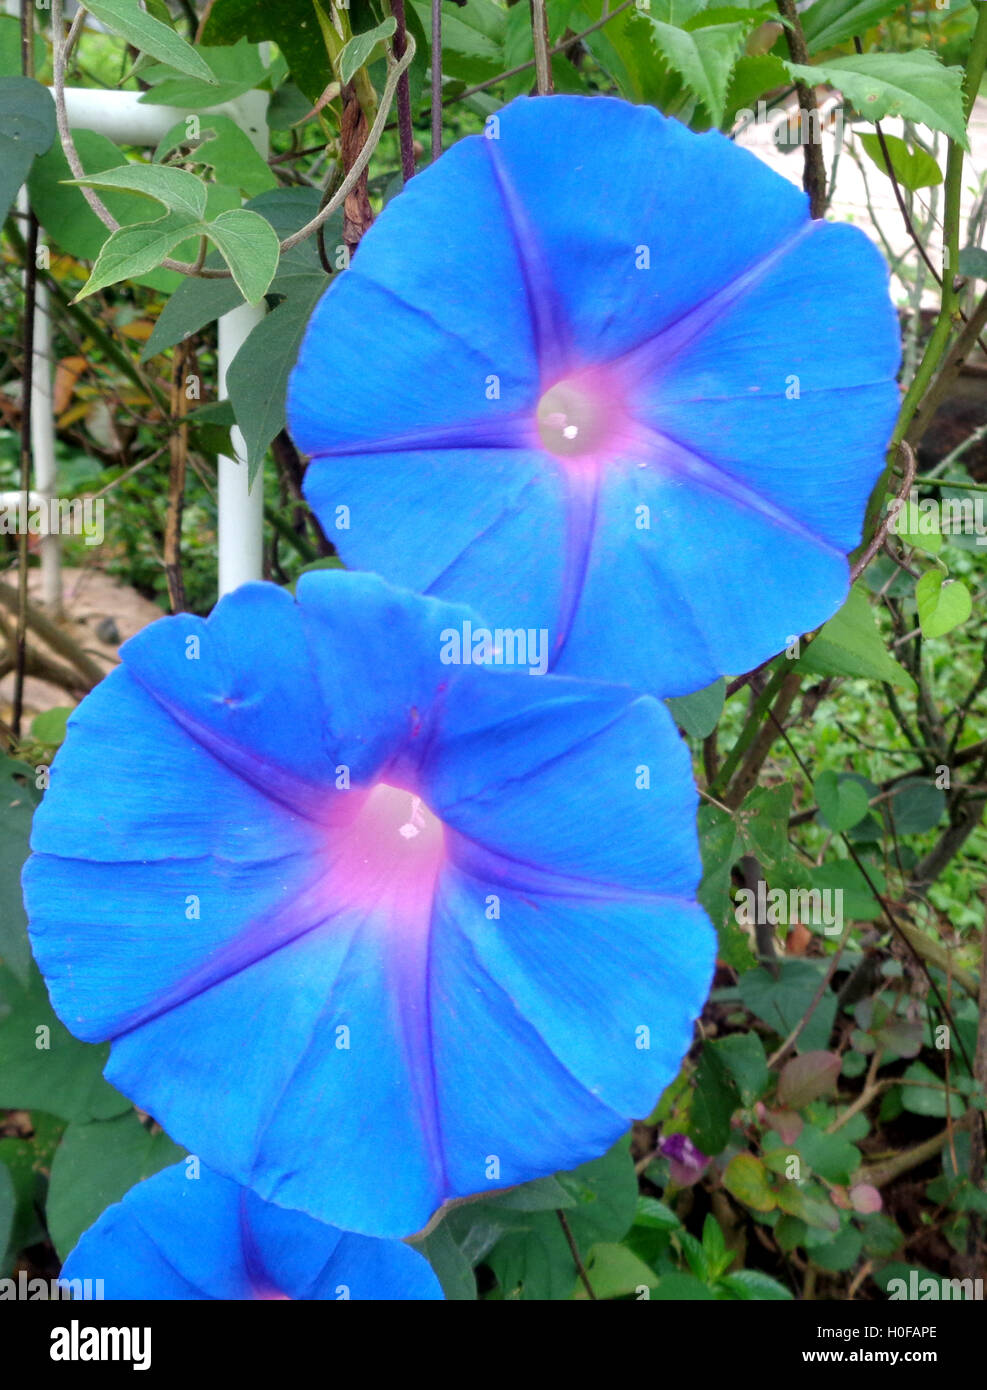 Two Blooming Blue Morning Glories in the Garden - Stock Image